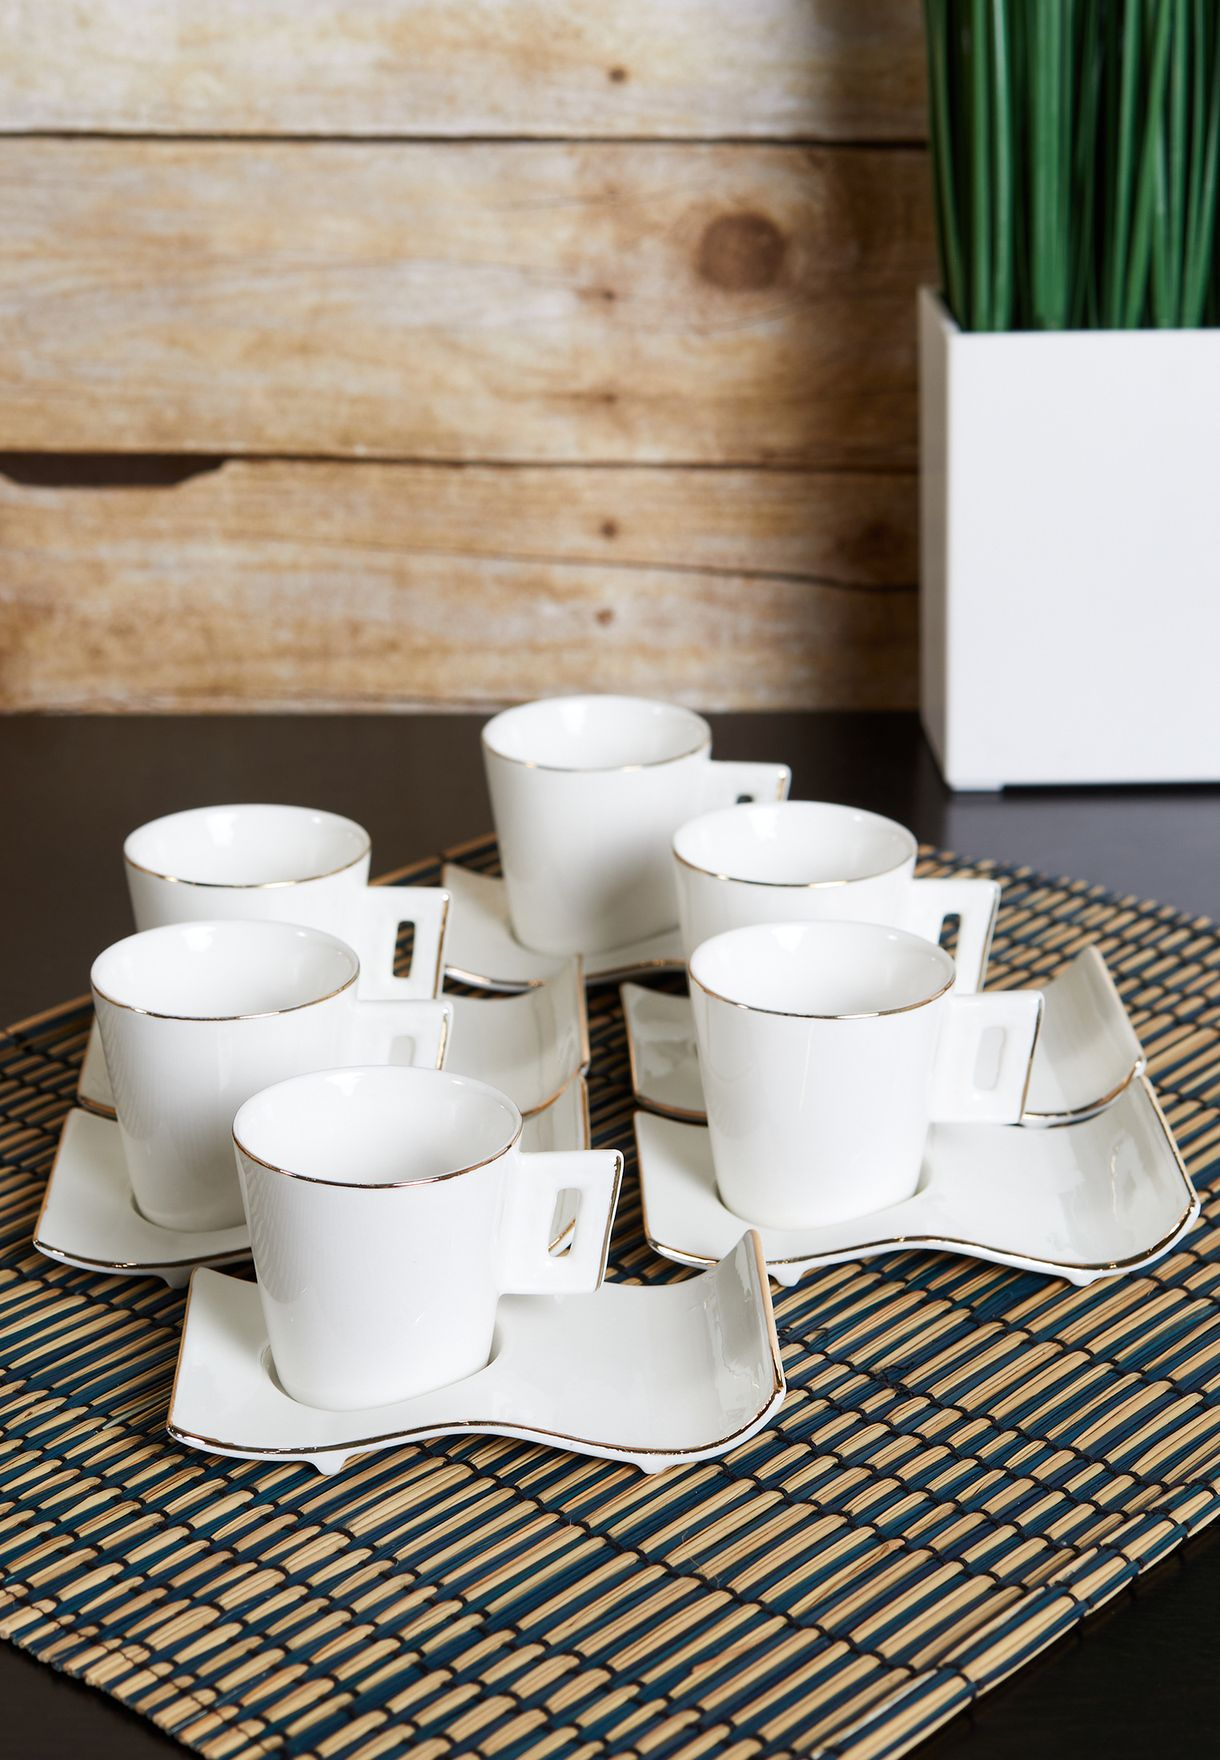 Set of 6 Espresso Mugs and Saucers